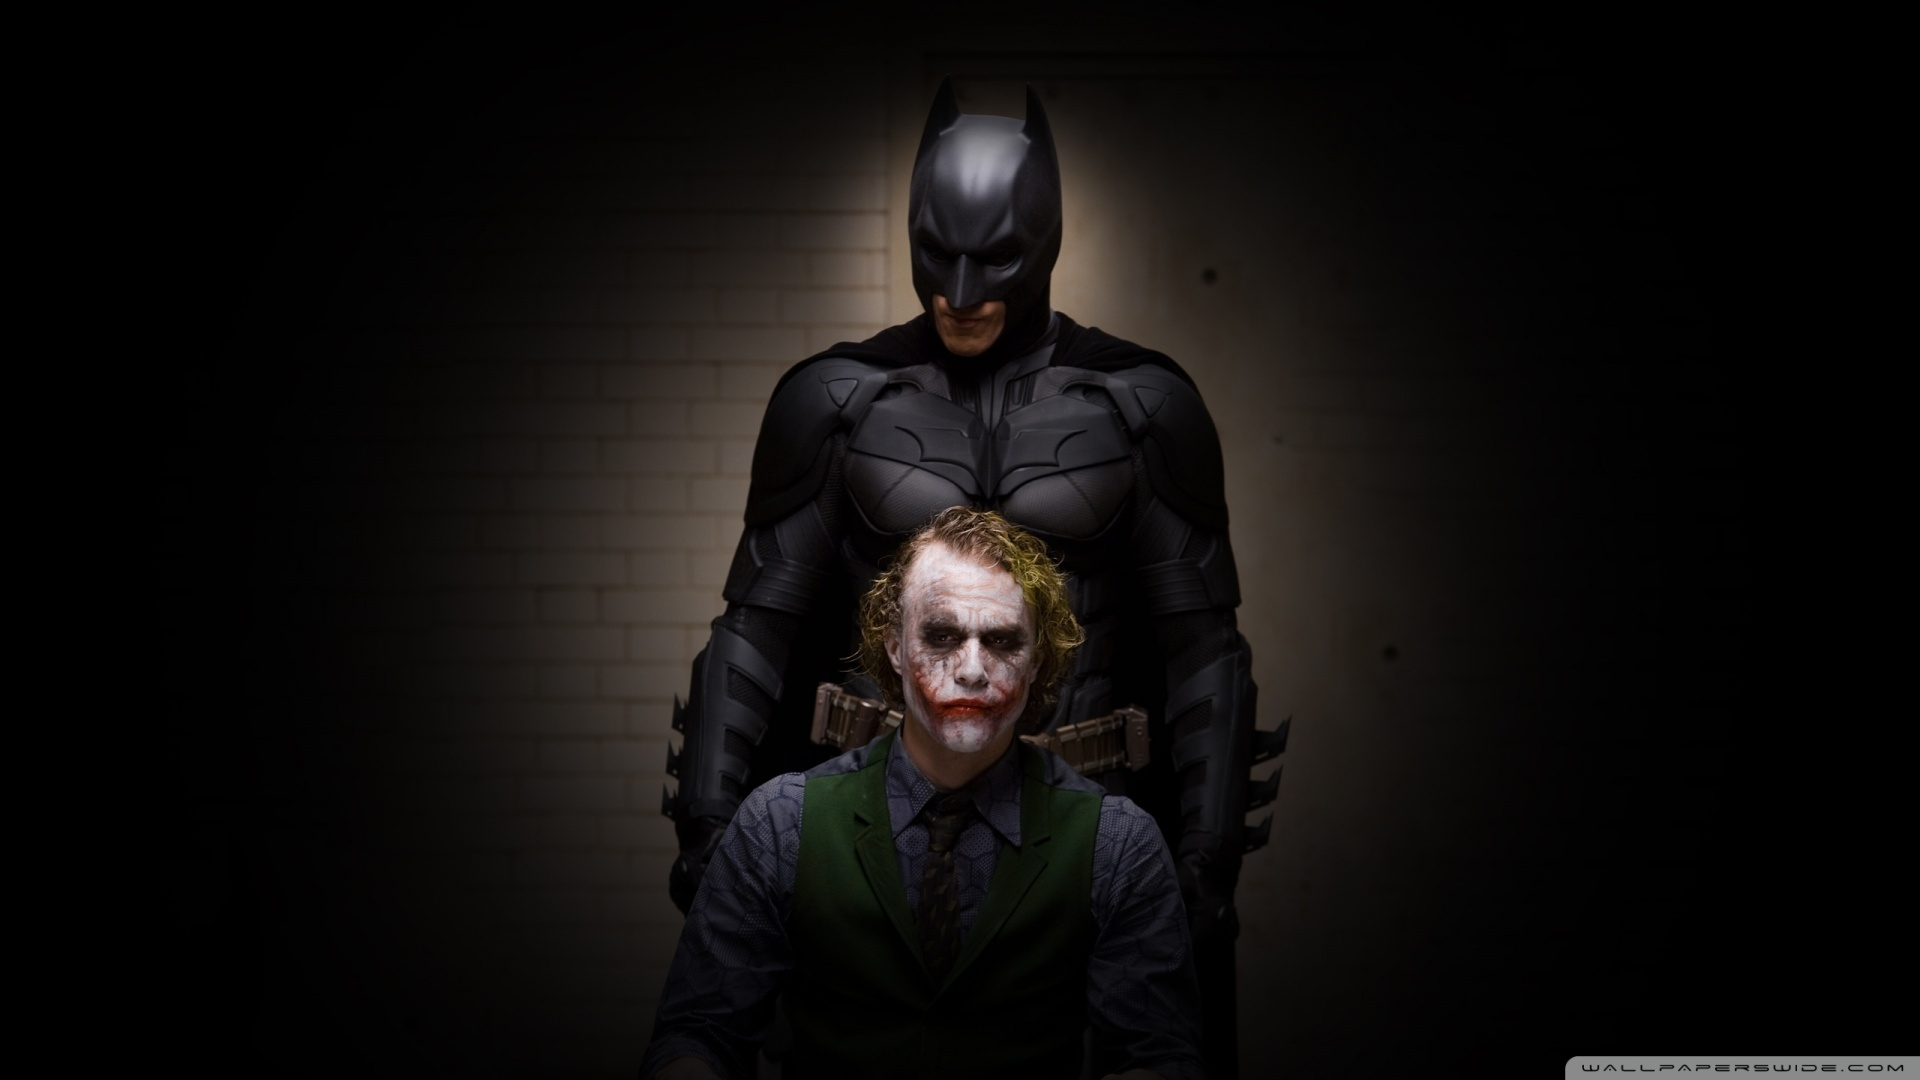 Download Batman And Joker Wallpaper 1920x1080 Wallpoper 1920x1080